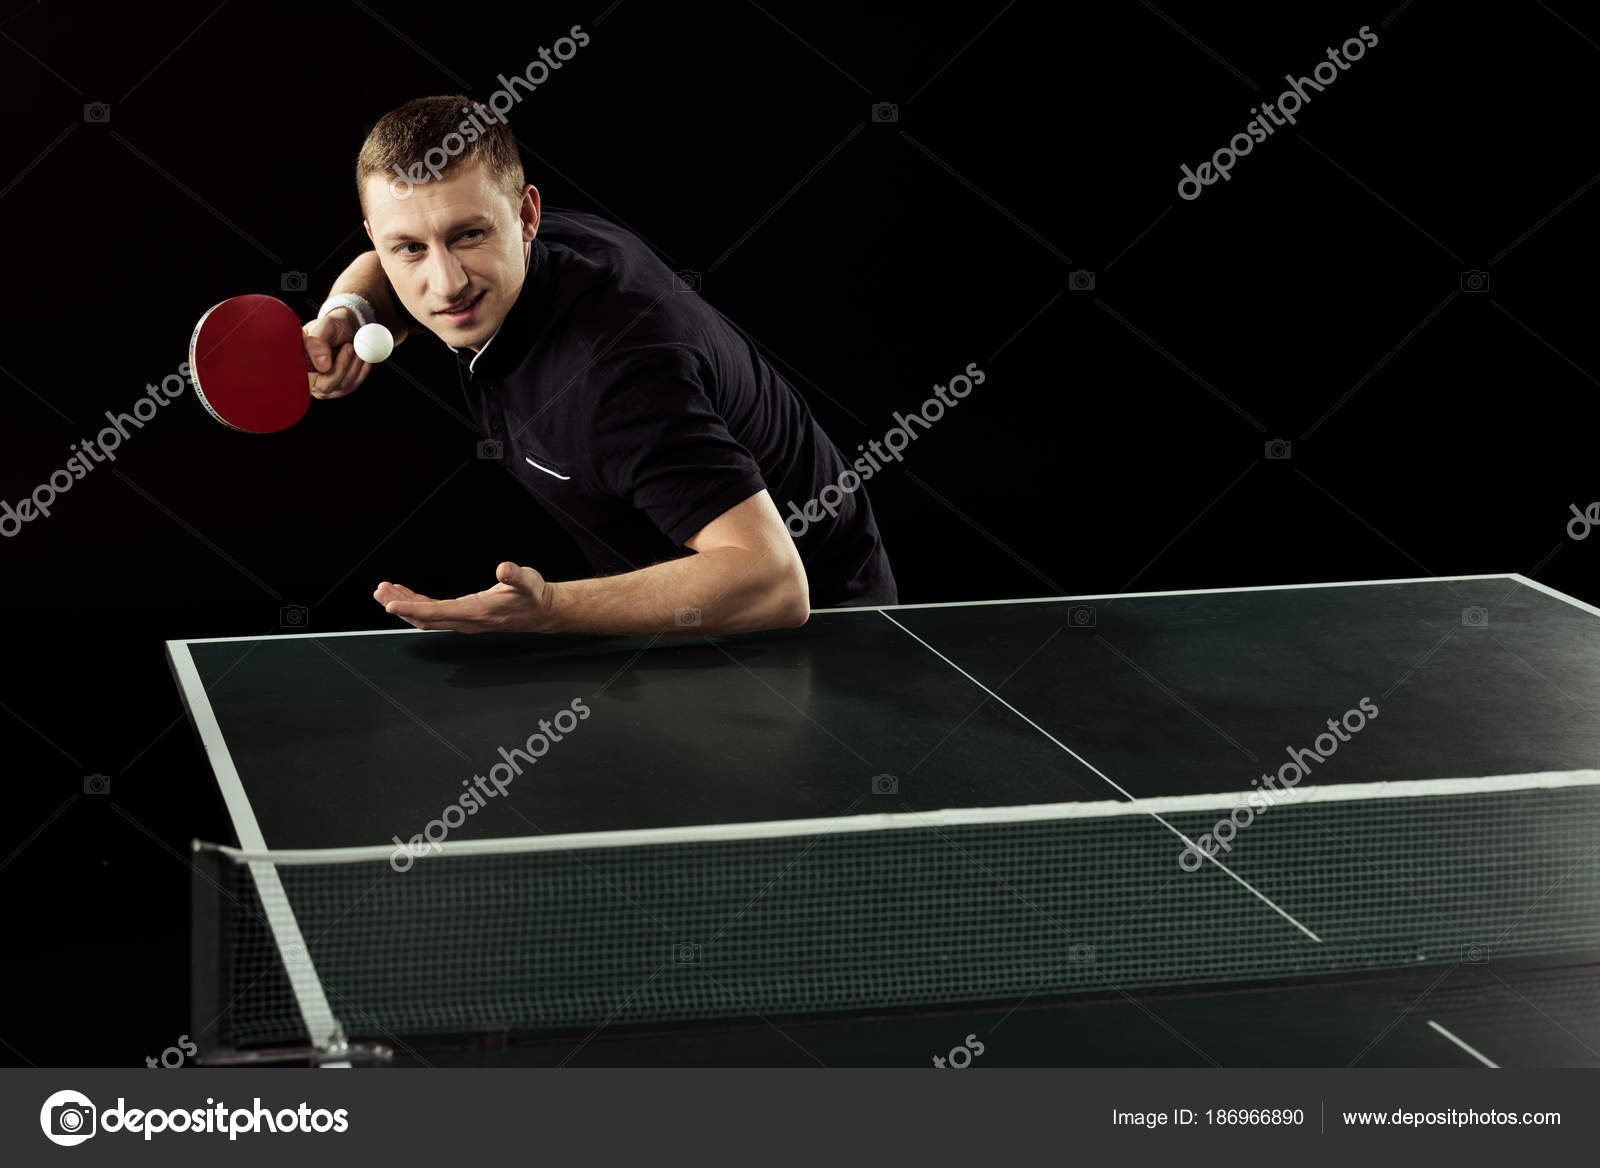 Focused Tennis Player Playing Table Tennis Isolated Black